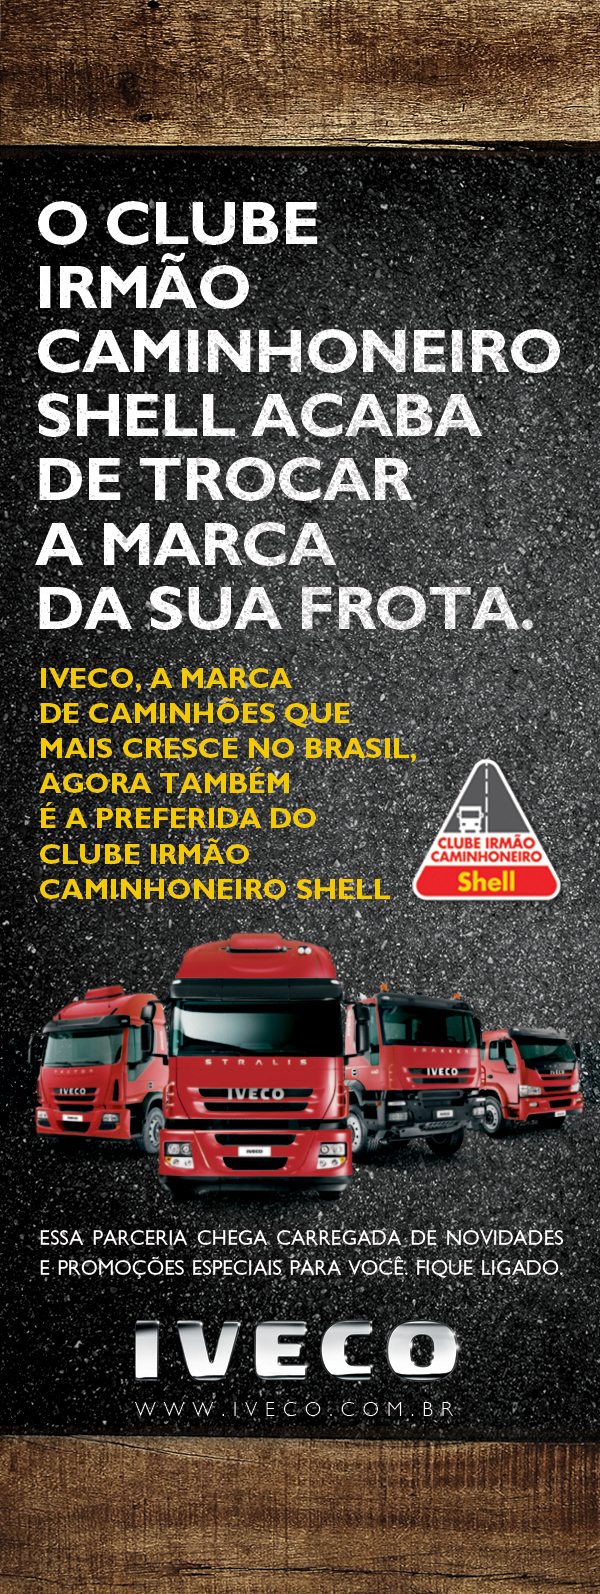 EMAILMKT_IVECO_SHELL 2 copy.jpg